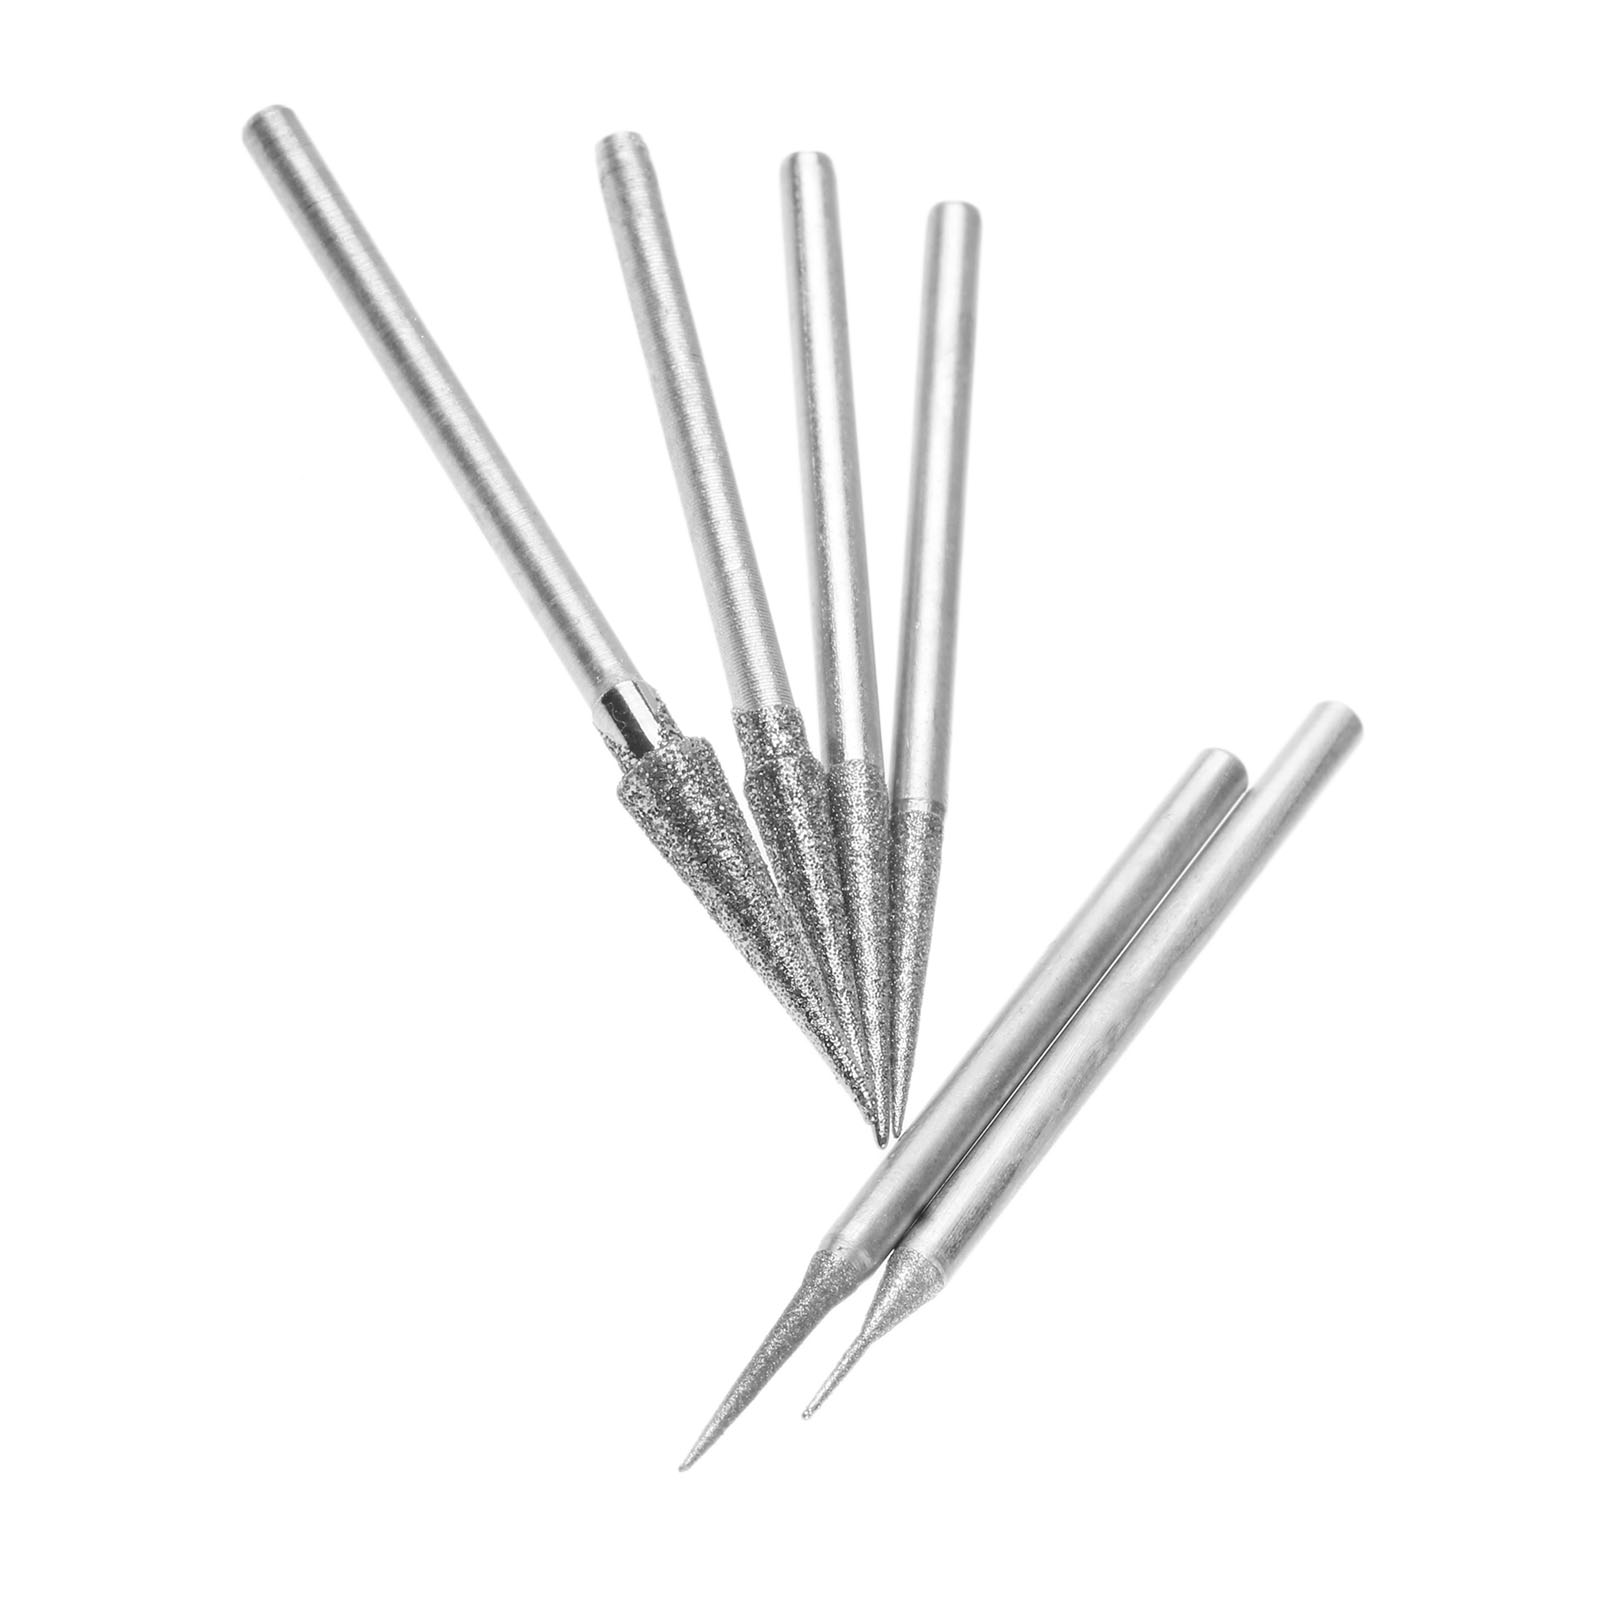 Image 5 - DRELD 6Pcs 1 4mm Diamond Grinding Head Grinding Needle Bits Burrs Metal Stone Jade Engraving Carving Tools 2.35mm Shank D Needle-in Abrasive Tools from Tools